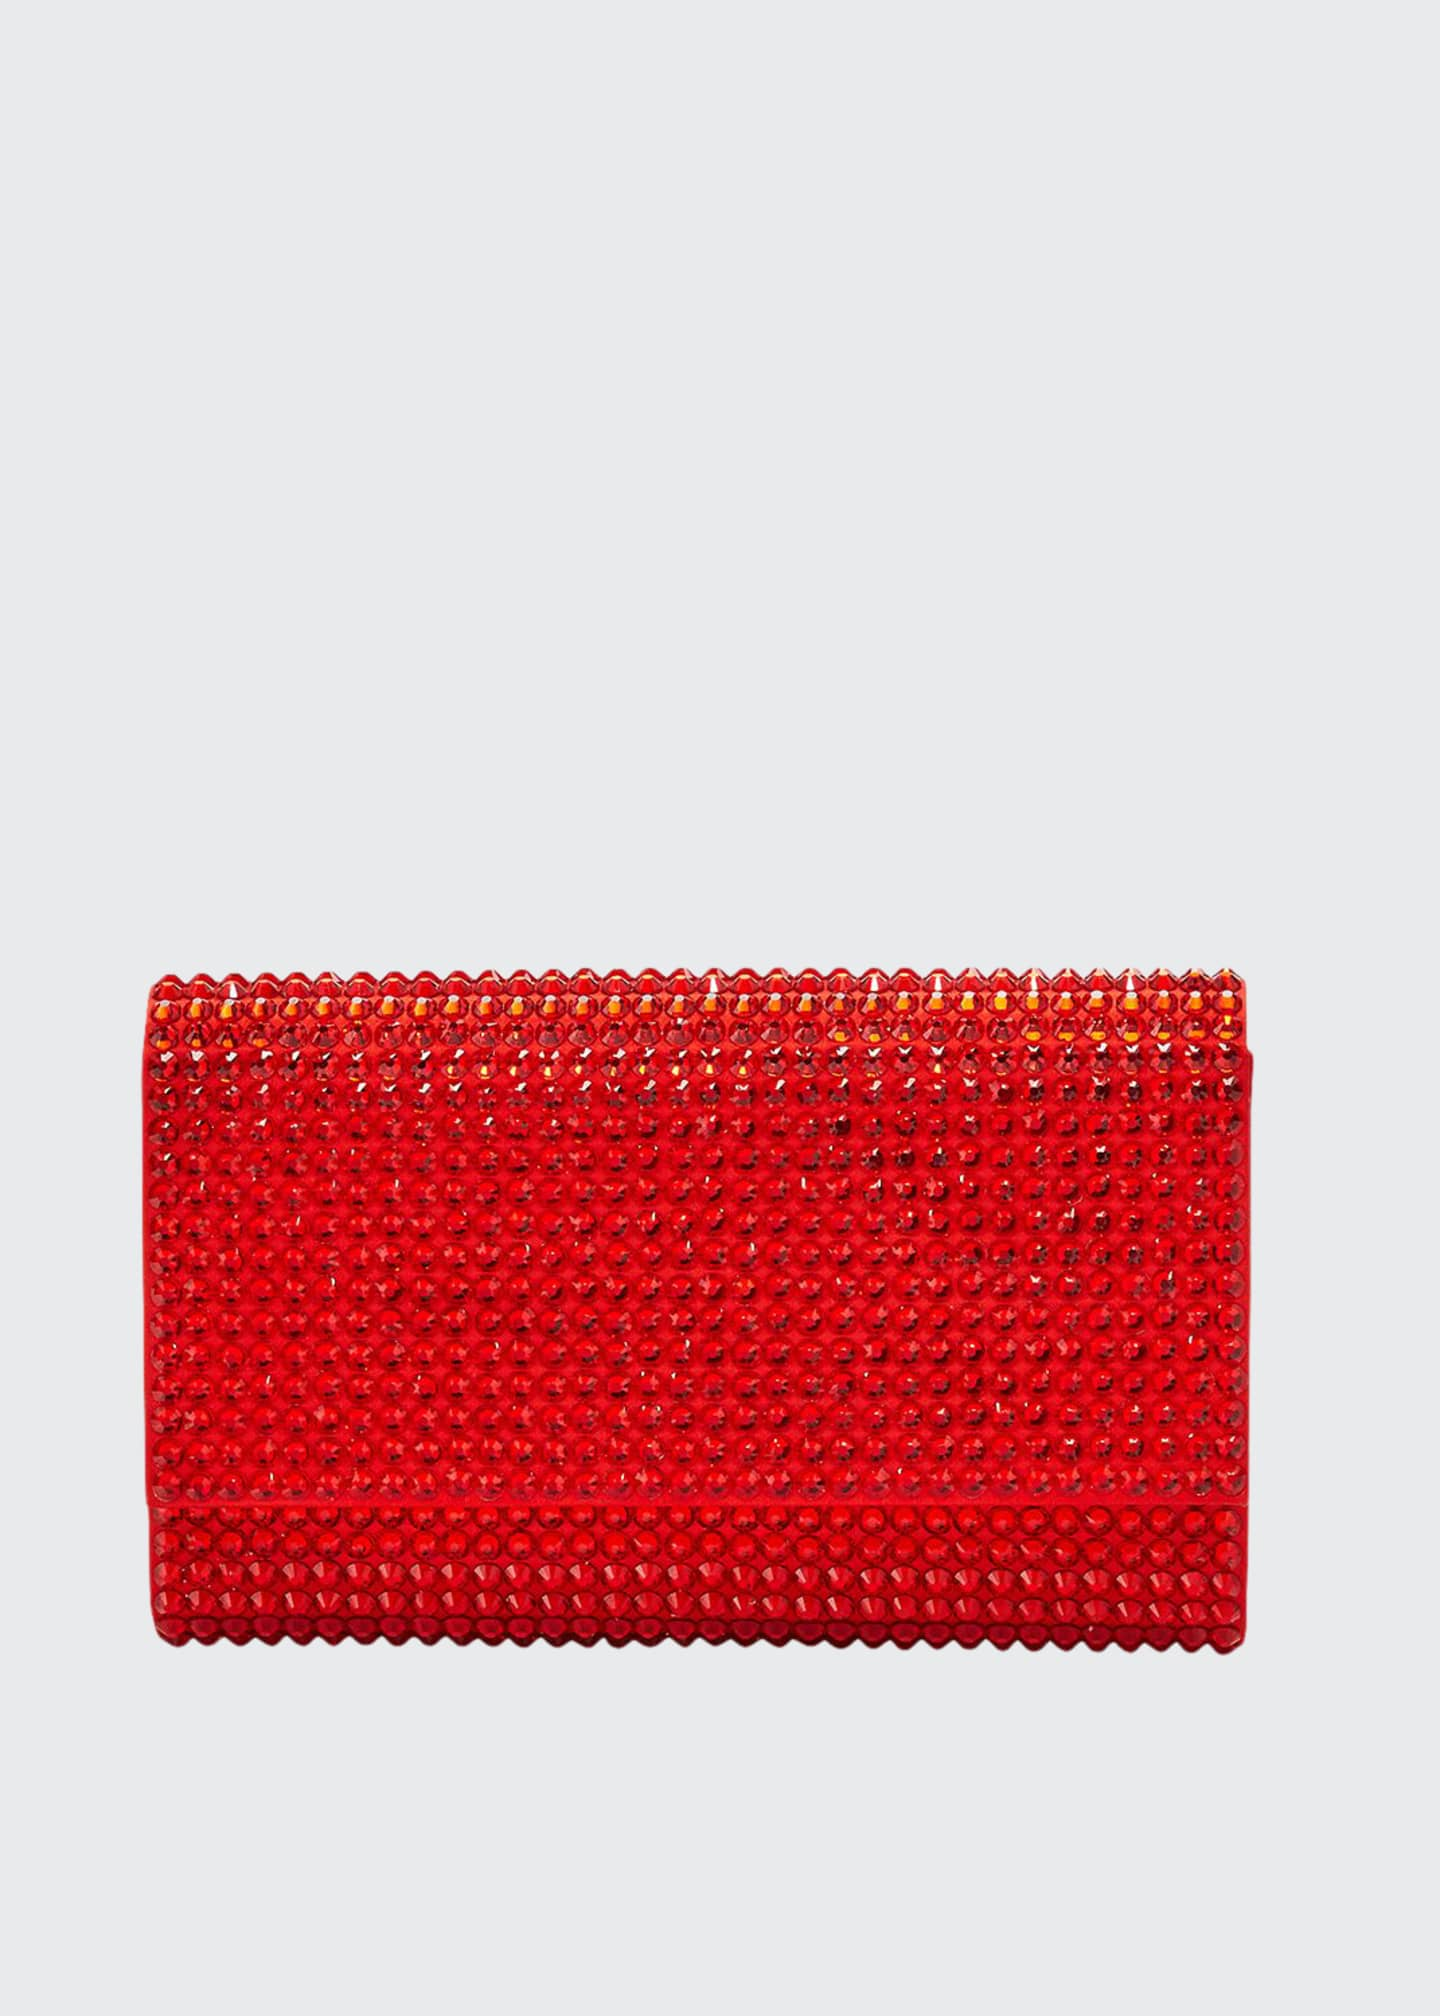 Judith Leiber Couture Fizzoni Bling Clutch Bag with